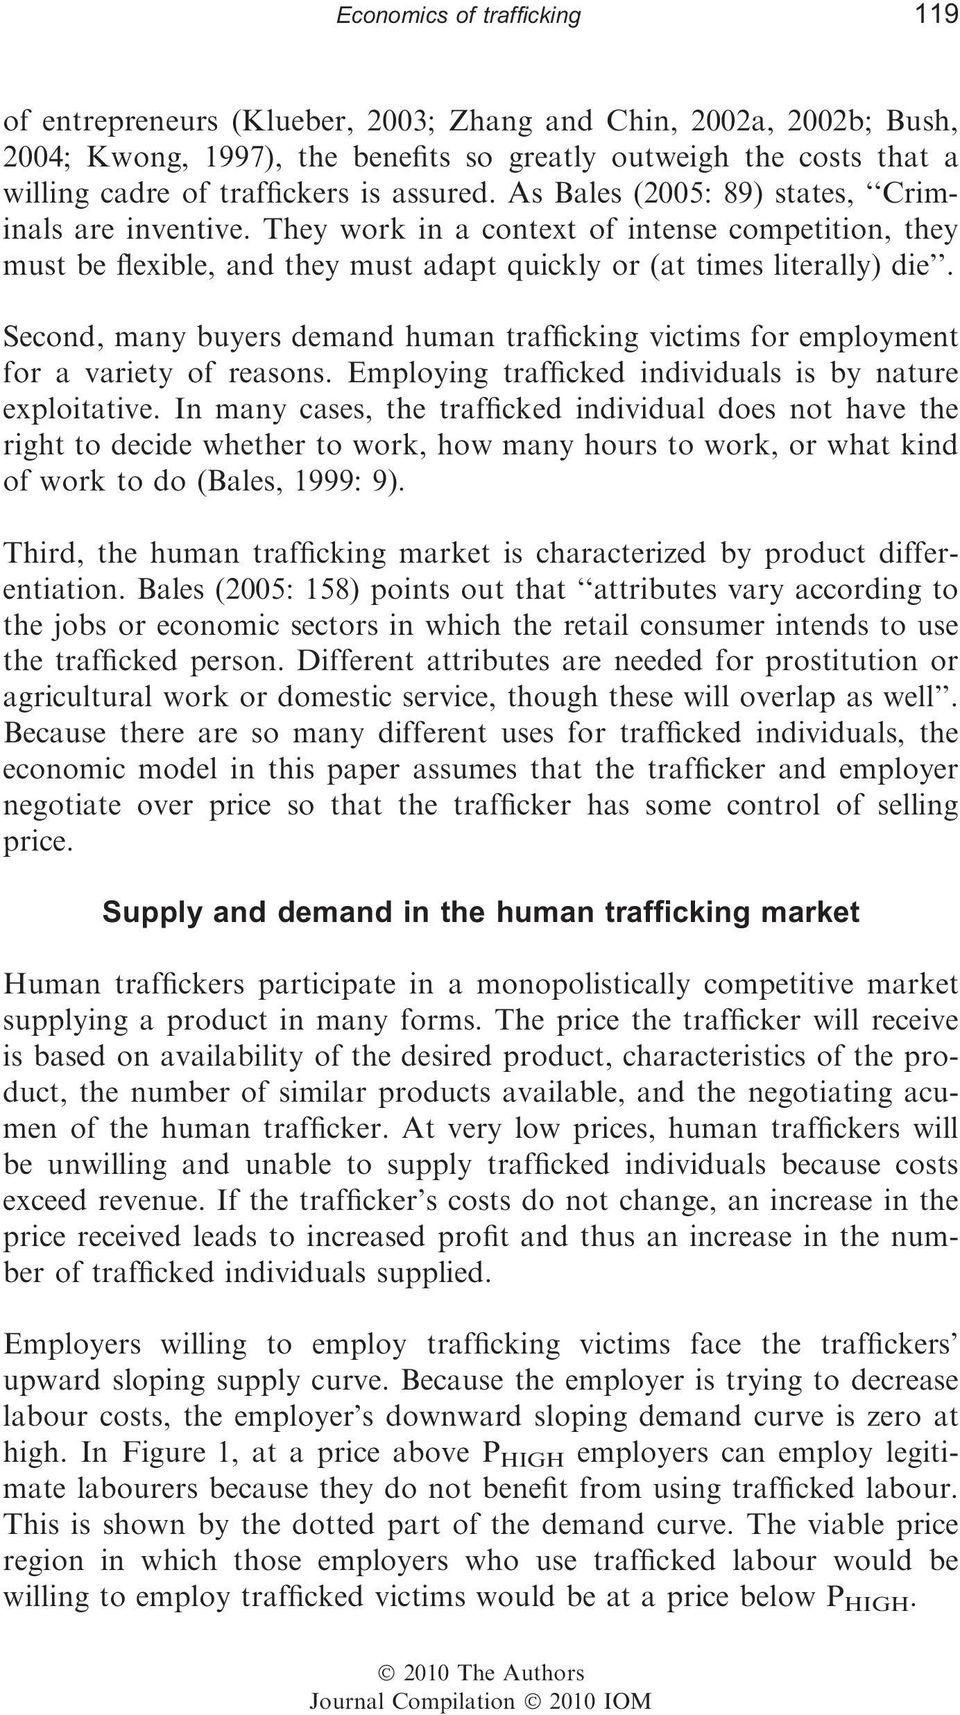 Second, many buyers demand human trafficking victims for employment for a variety of reasons. Employing trafficked individuals is by nature exploitative.